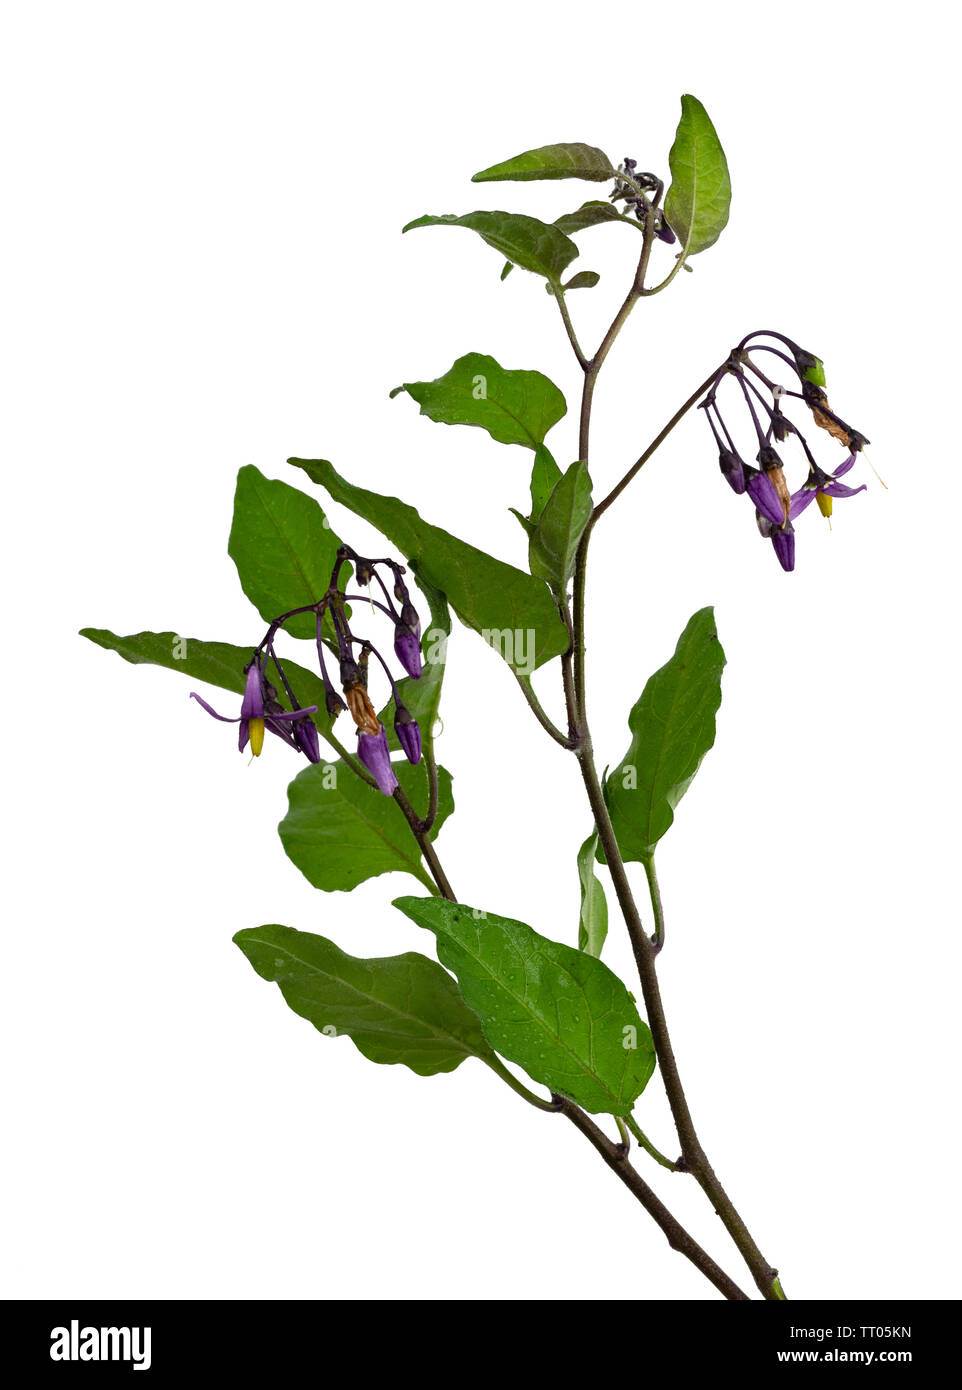 Annual foliage and purple flowers of Solanum dulcamara, woody nightshade, a toxic herbaceous perennial scrambler on a white background - Stock Image